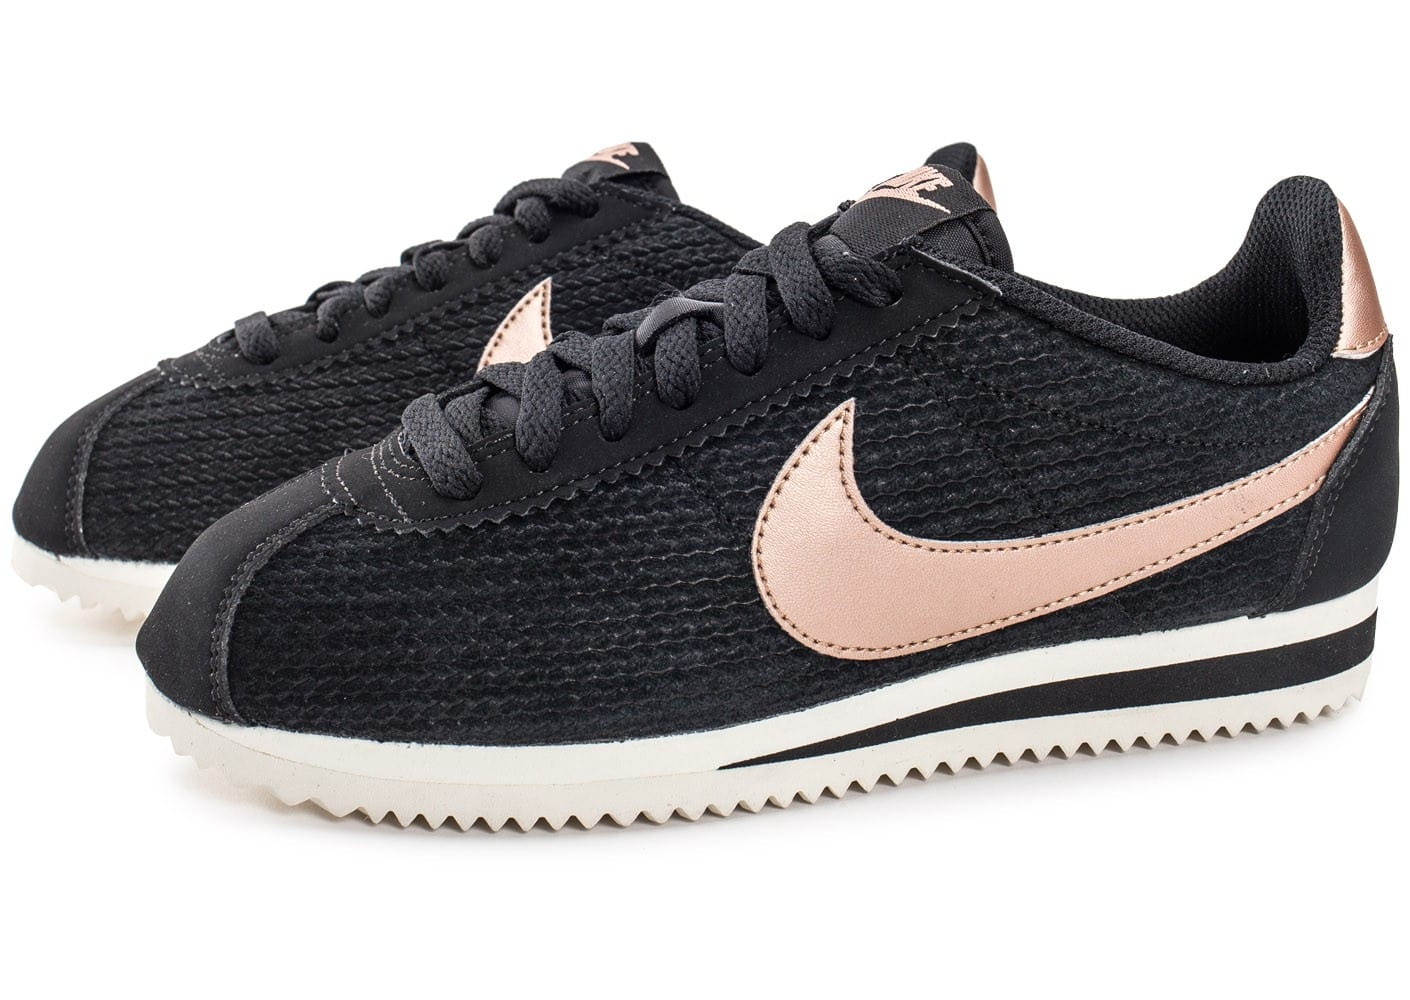 nike cortez leather se bronze chaussures femme chausport. Black Bedroom Furniture Sets. Home Design Ideas